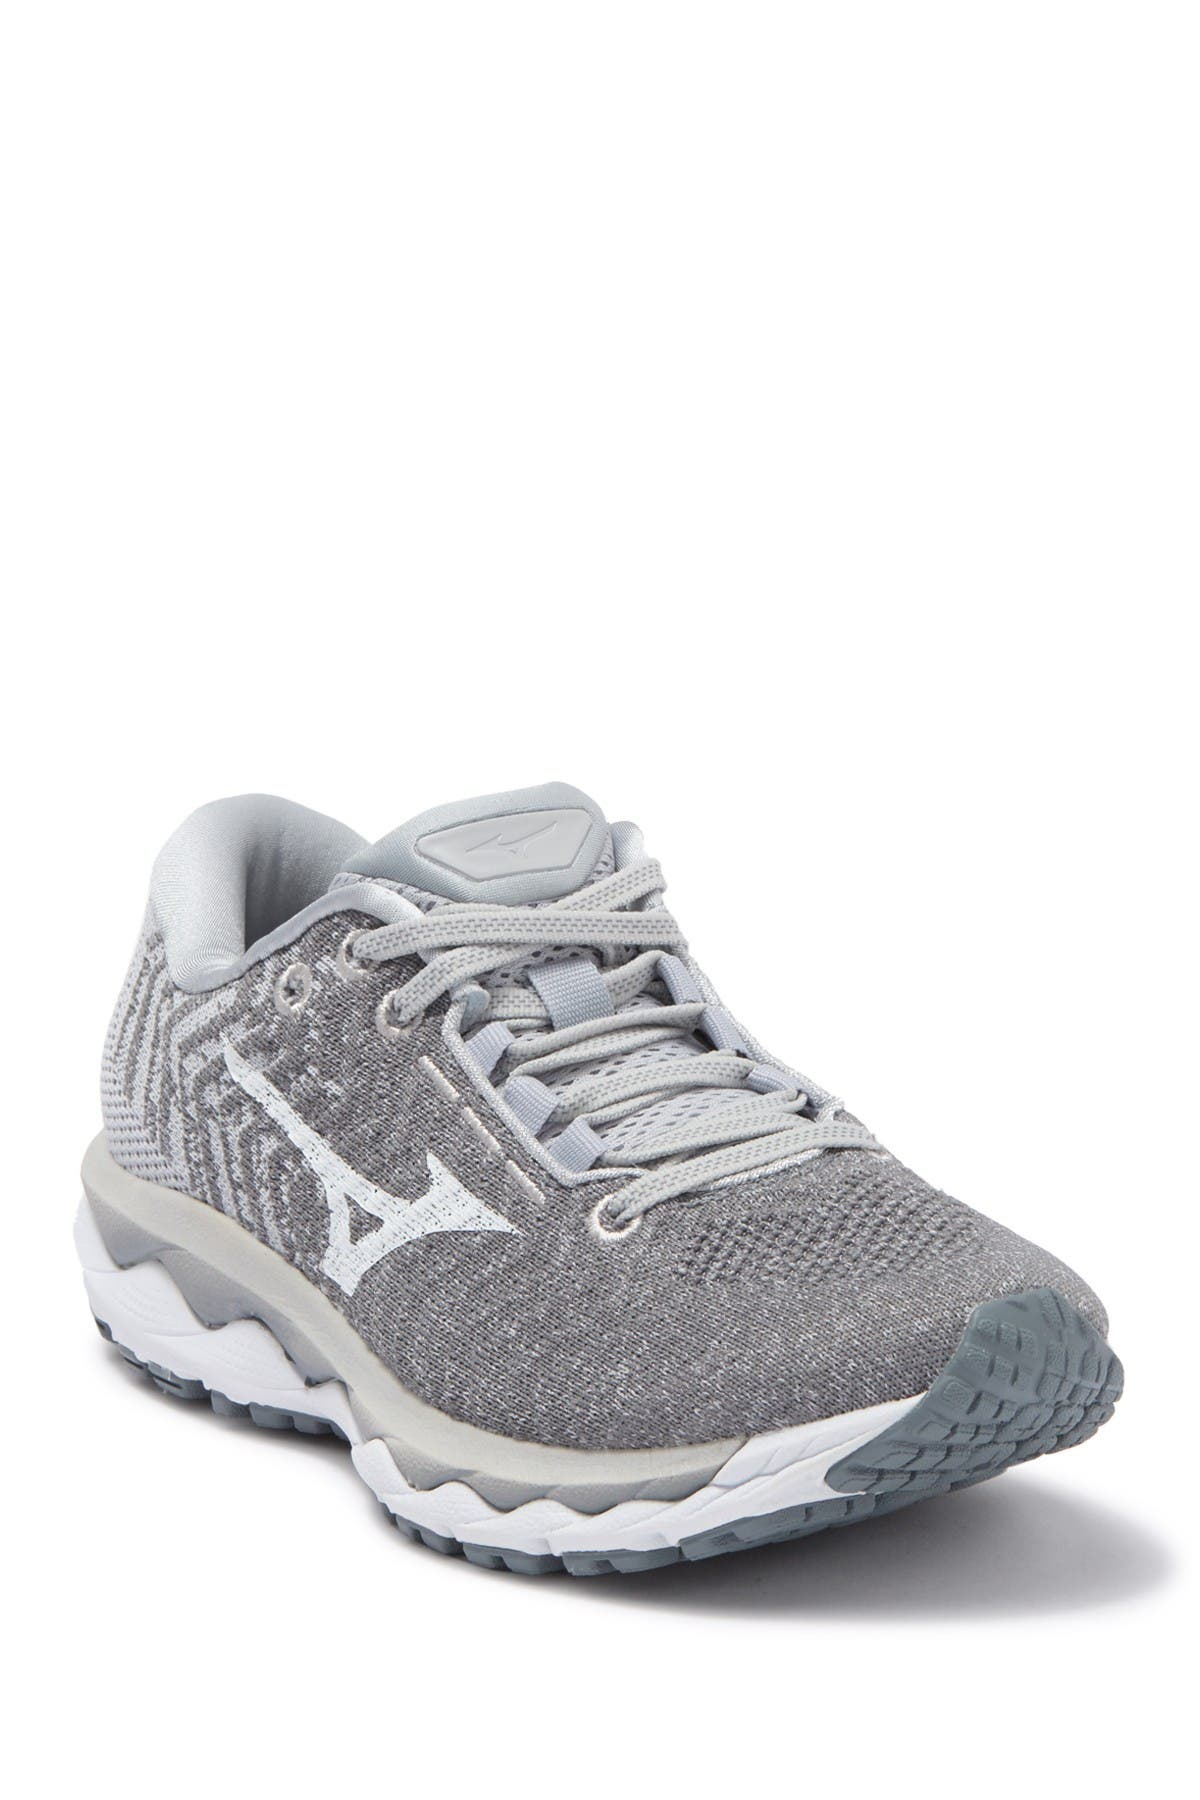 Image of Mizuno Wave Sky 3 Waveknit Running Sneaker